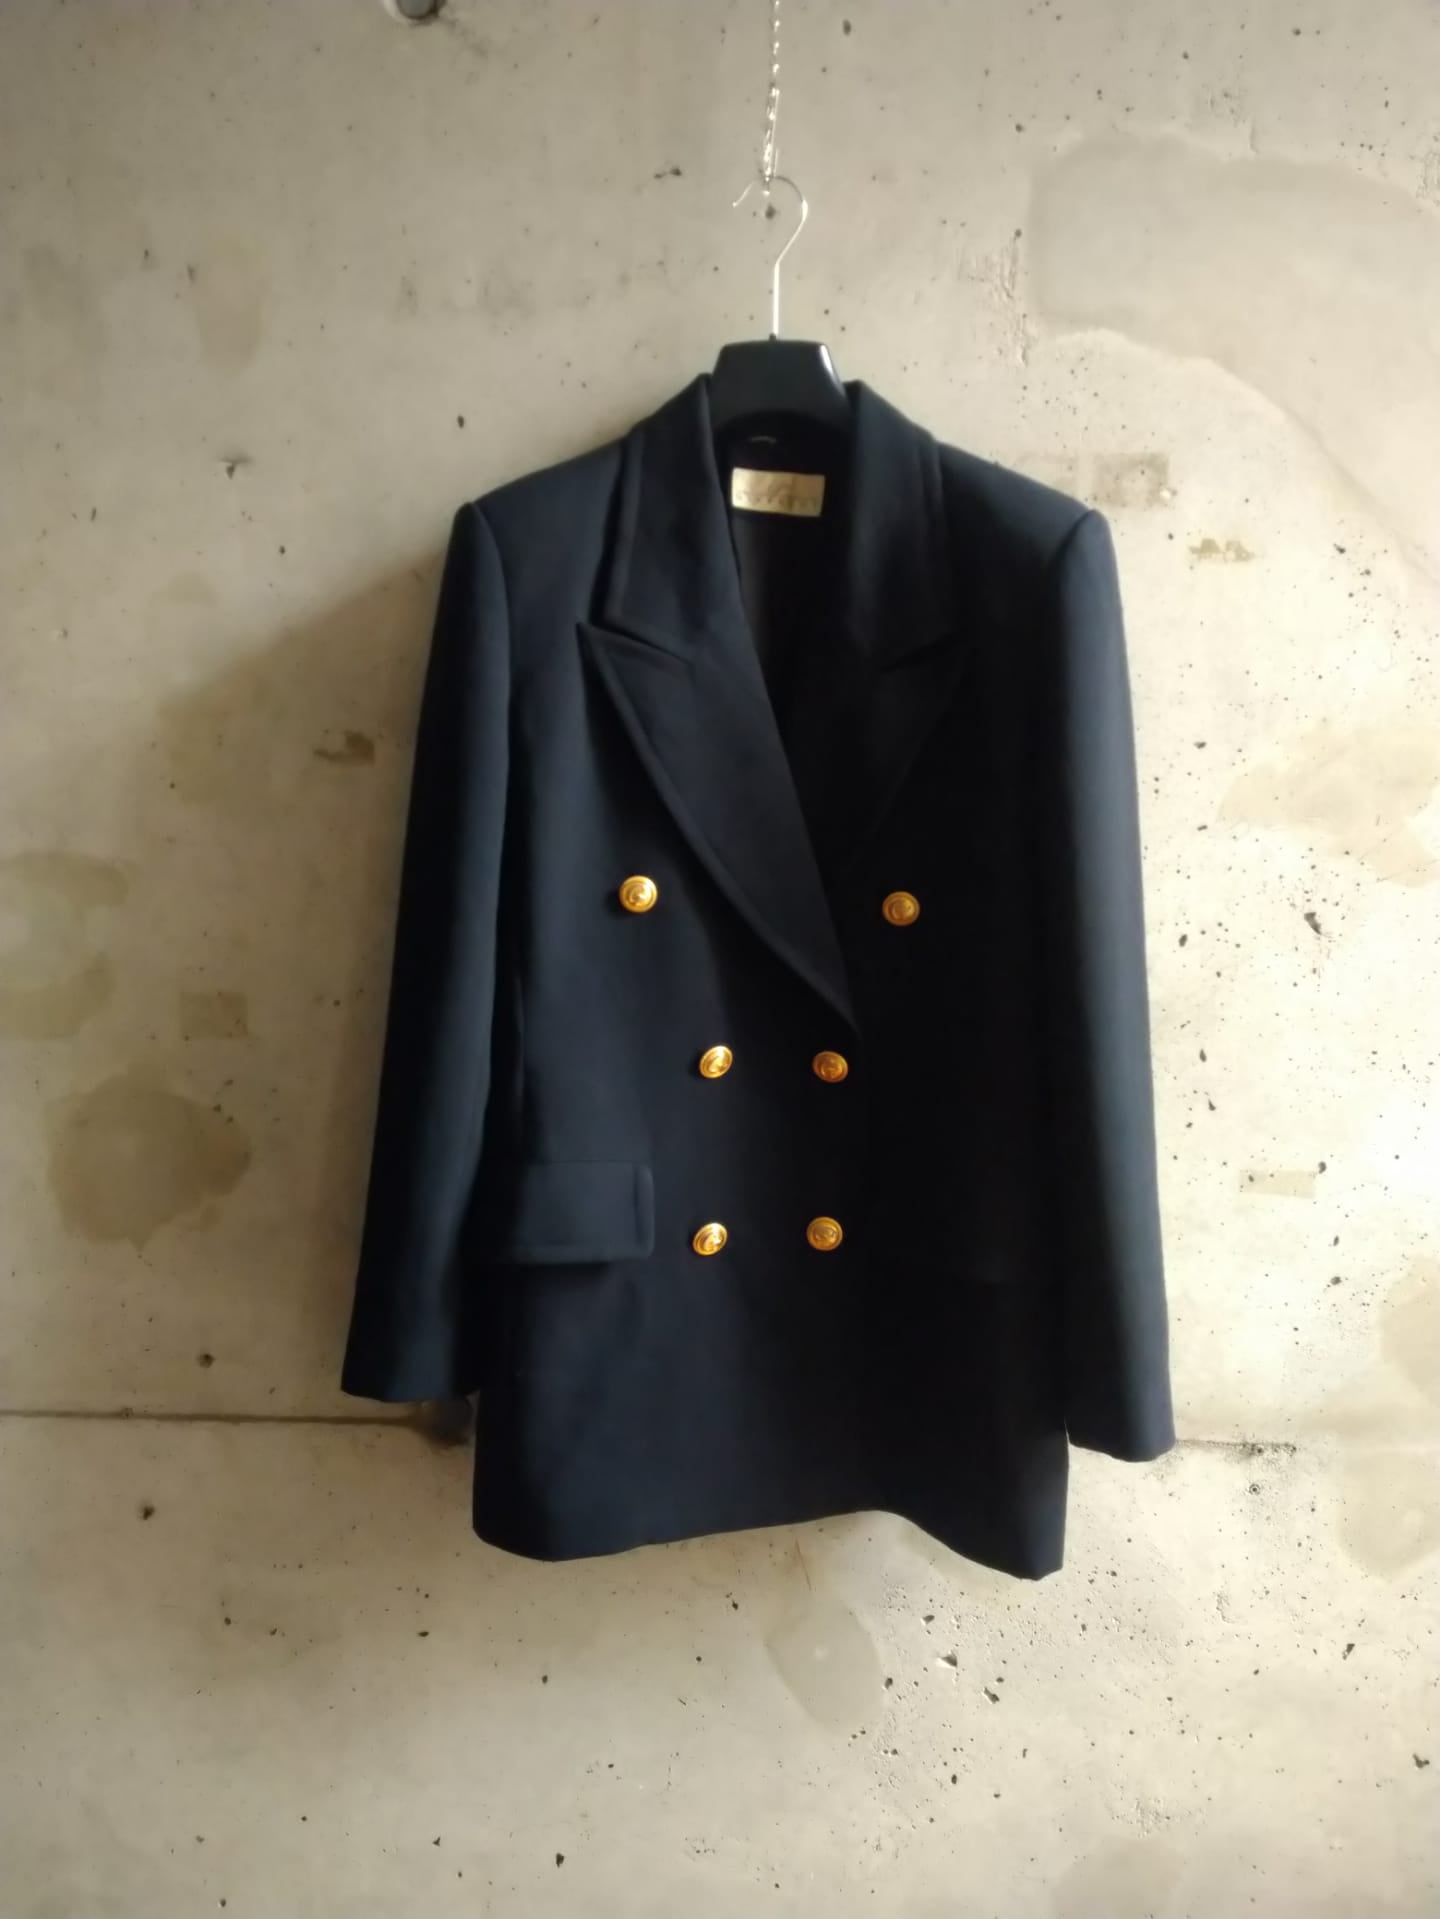 Givenchy black jacket